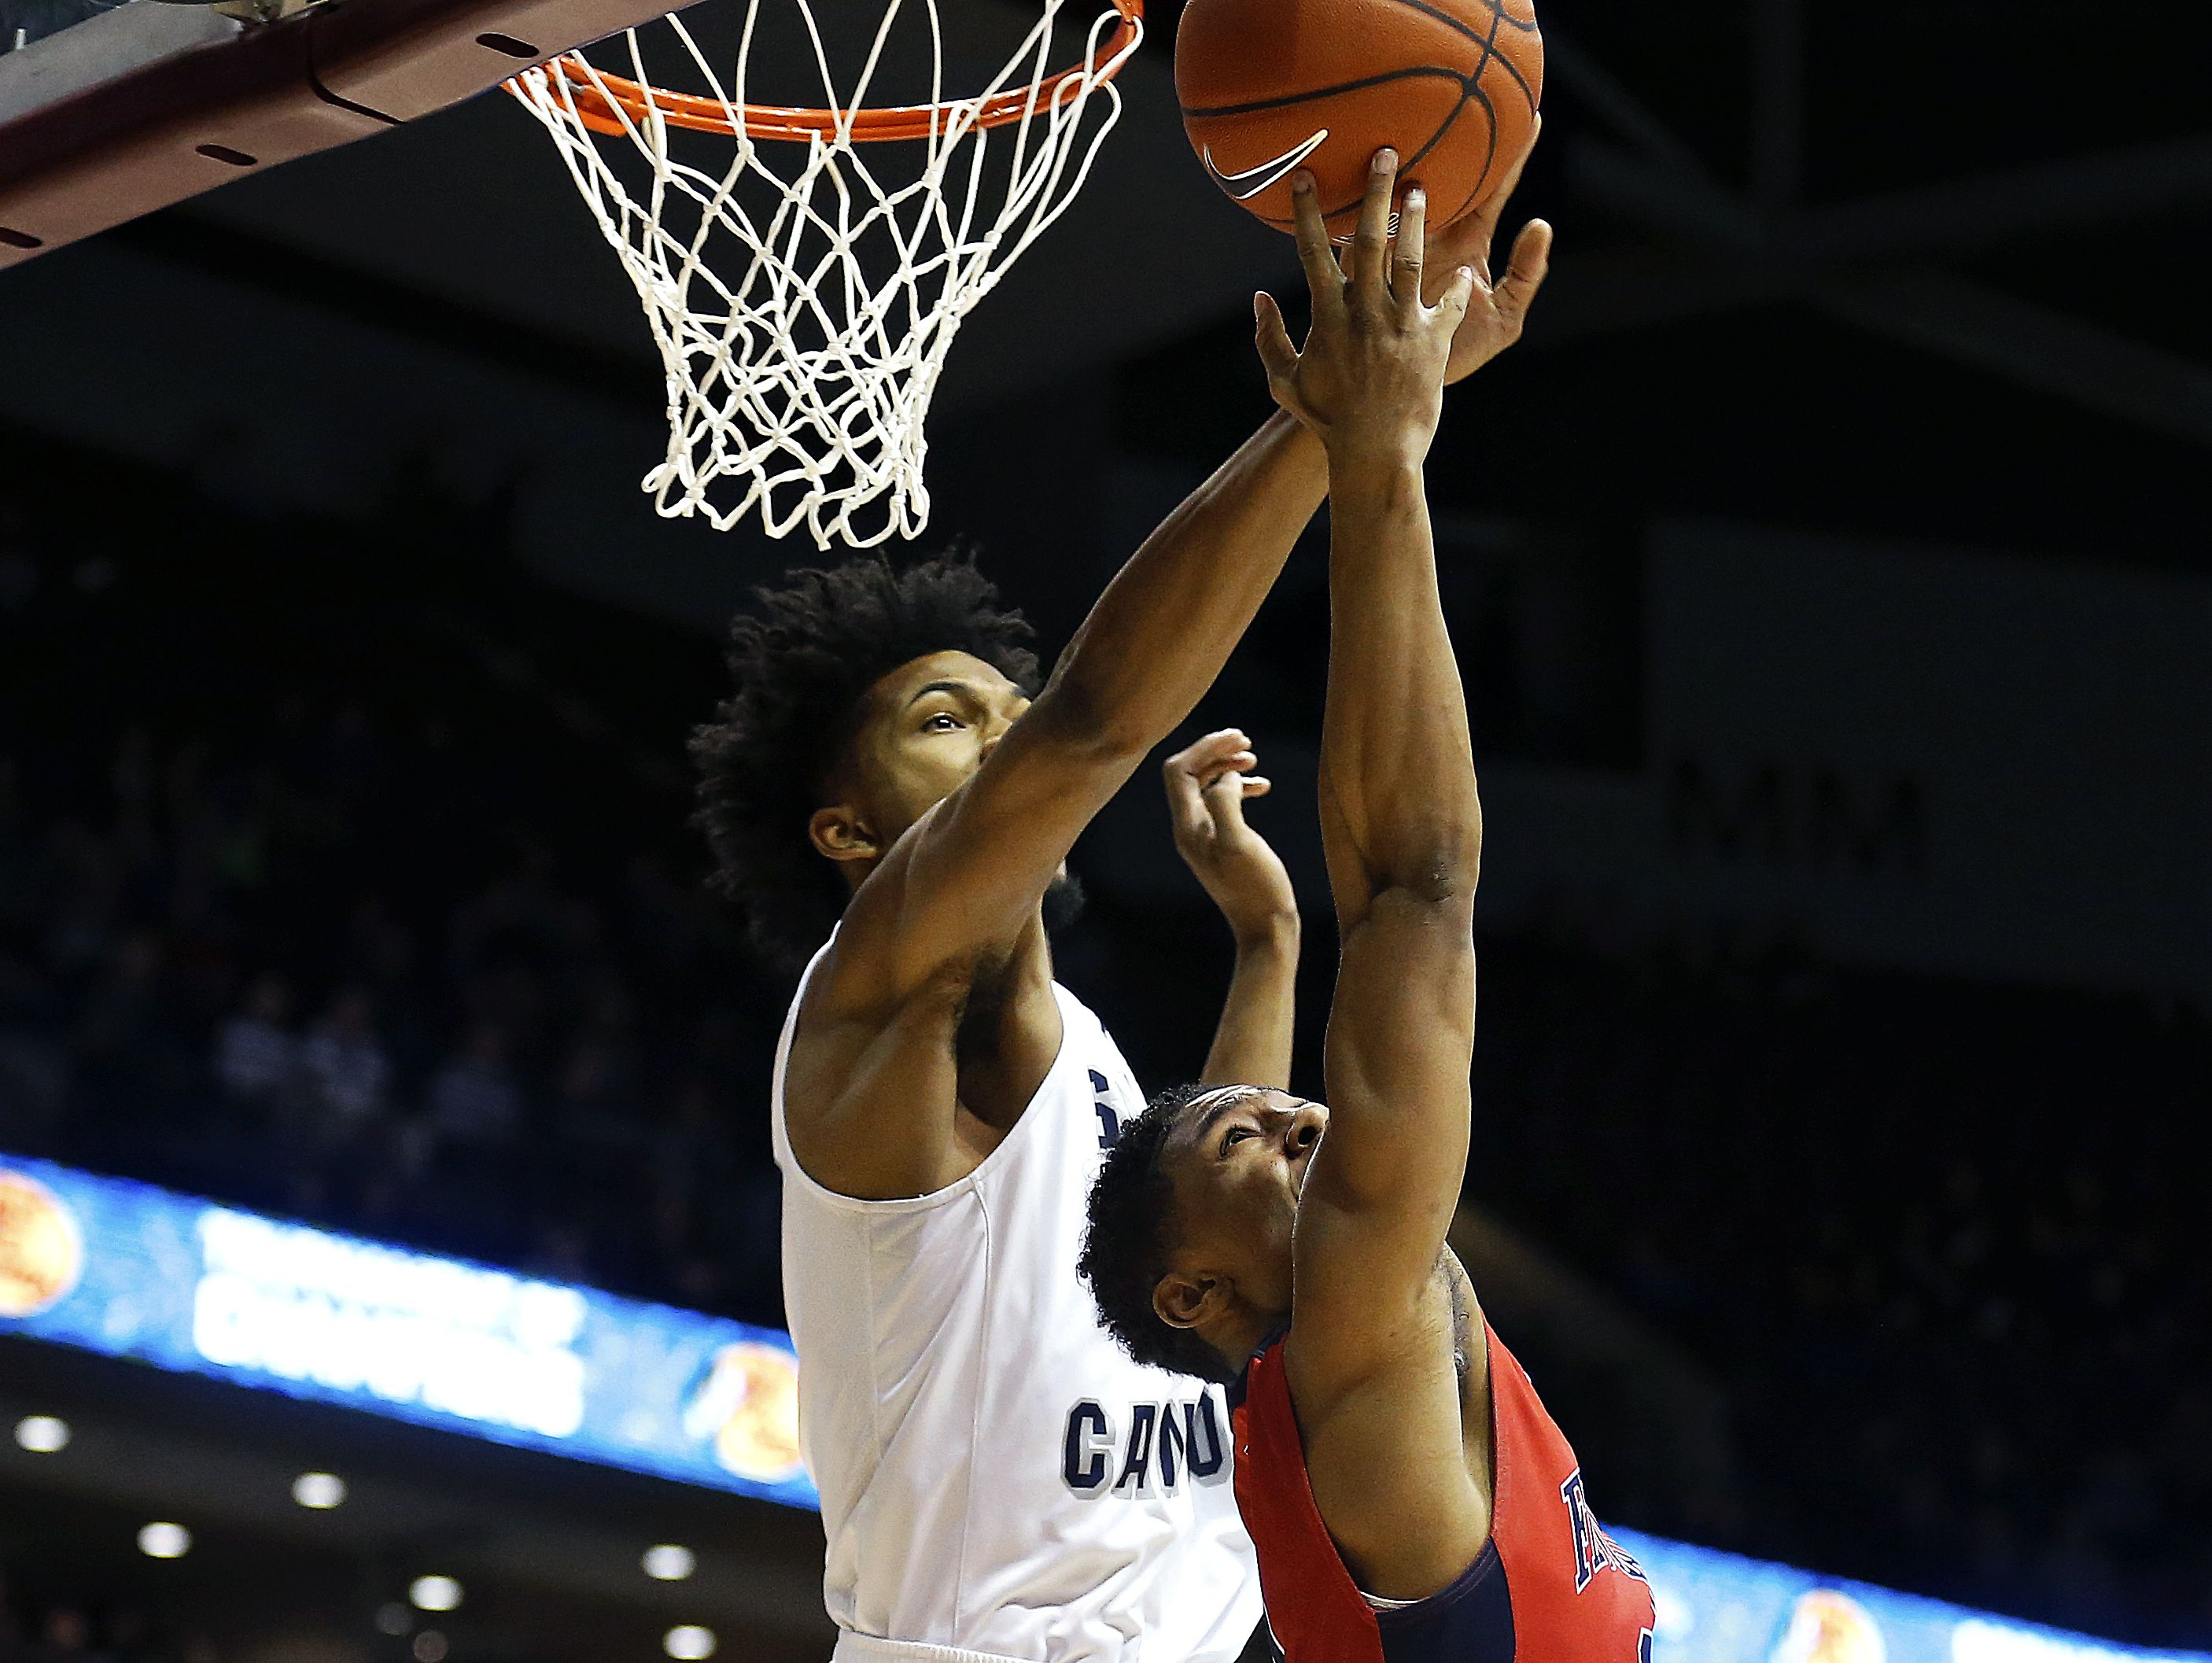 Sierra Canyon School forward Marvin Bagley III (35) blocks a shot by Findlay Prep guard Justin Roberts (0) during first quarter action of the 2017 Bass Pro Tournament of Champions high school basketball game between the Sierra Canyon School Blazers (Chatsworth, Calif.) and the Findlay Prep Pilots (Las Vegas, Nev.) at JQH Arena in Springfield, Mo. on Jan. 13, 2017.